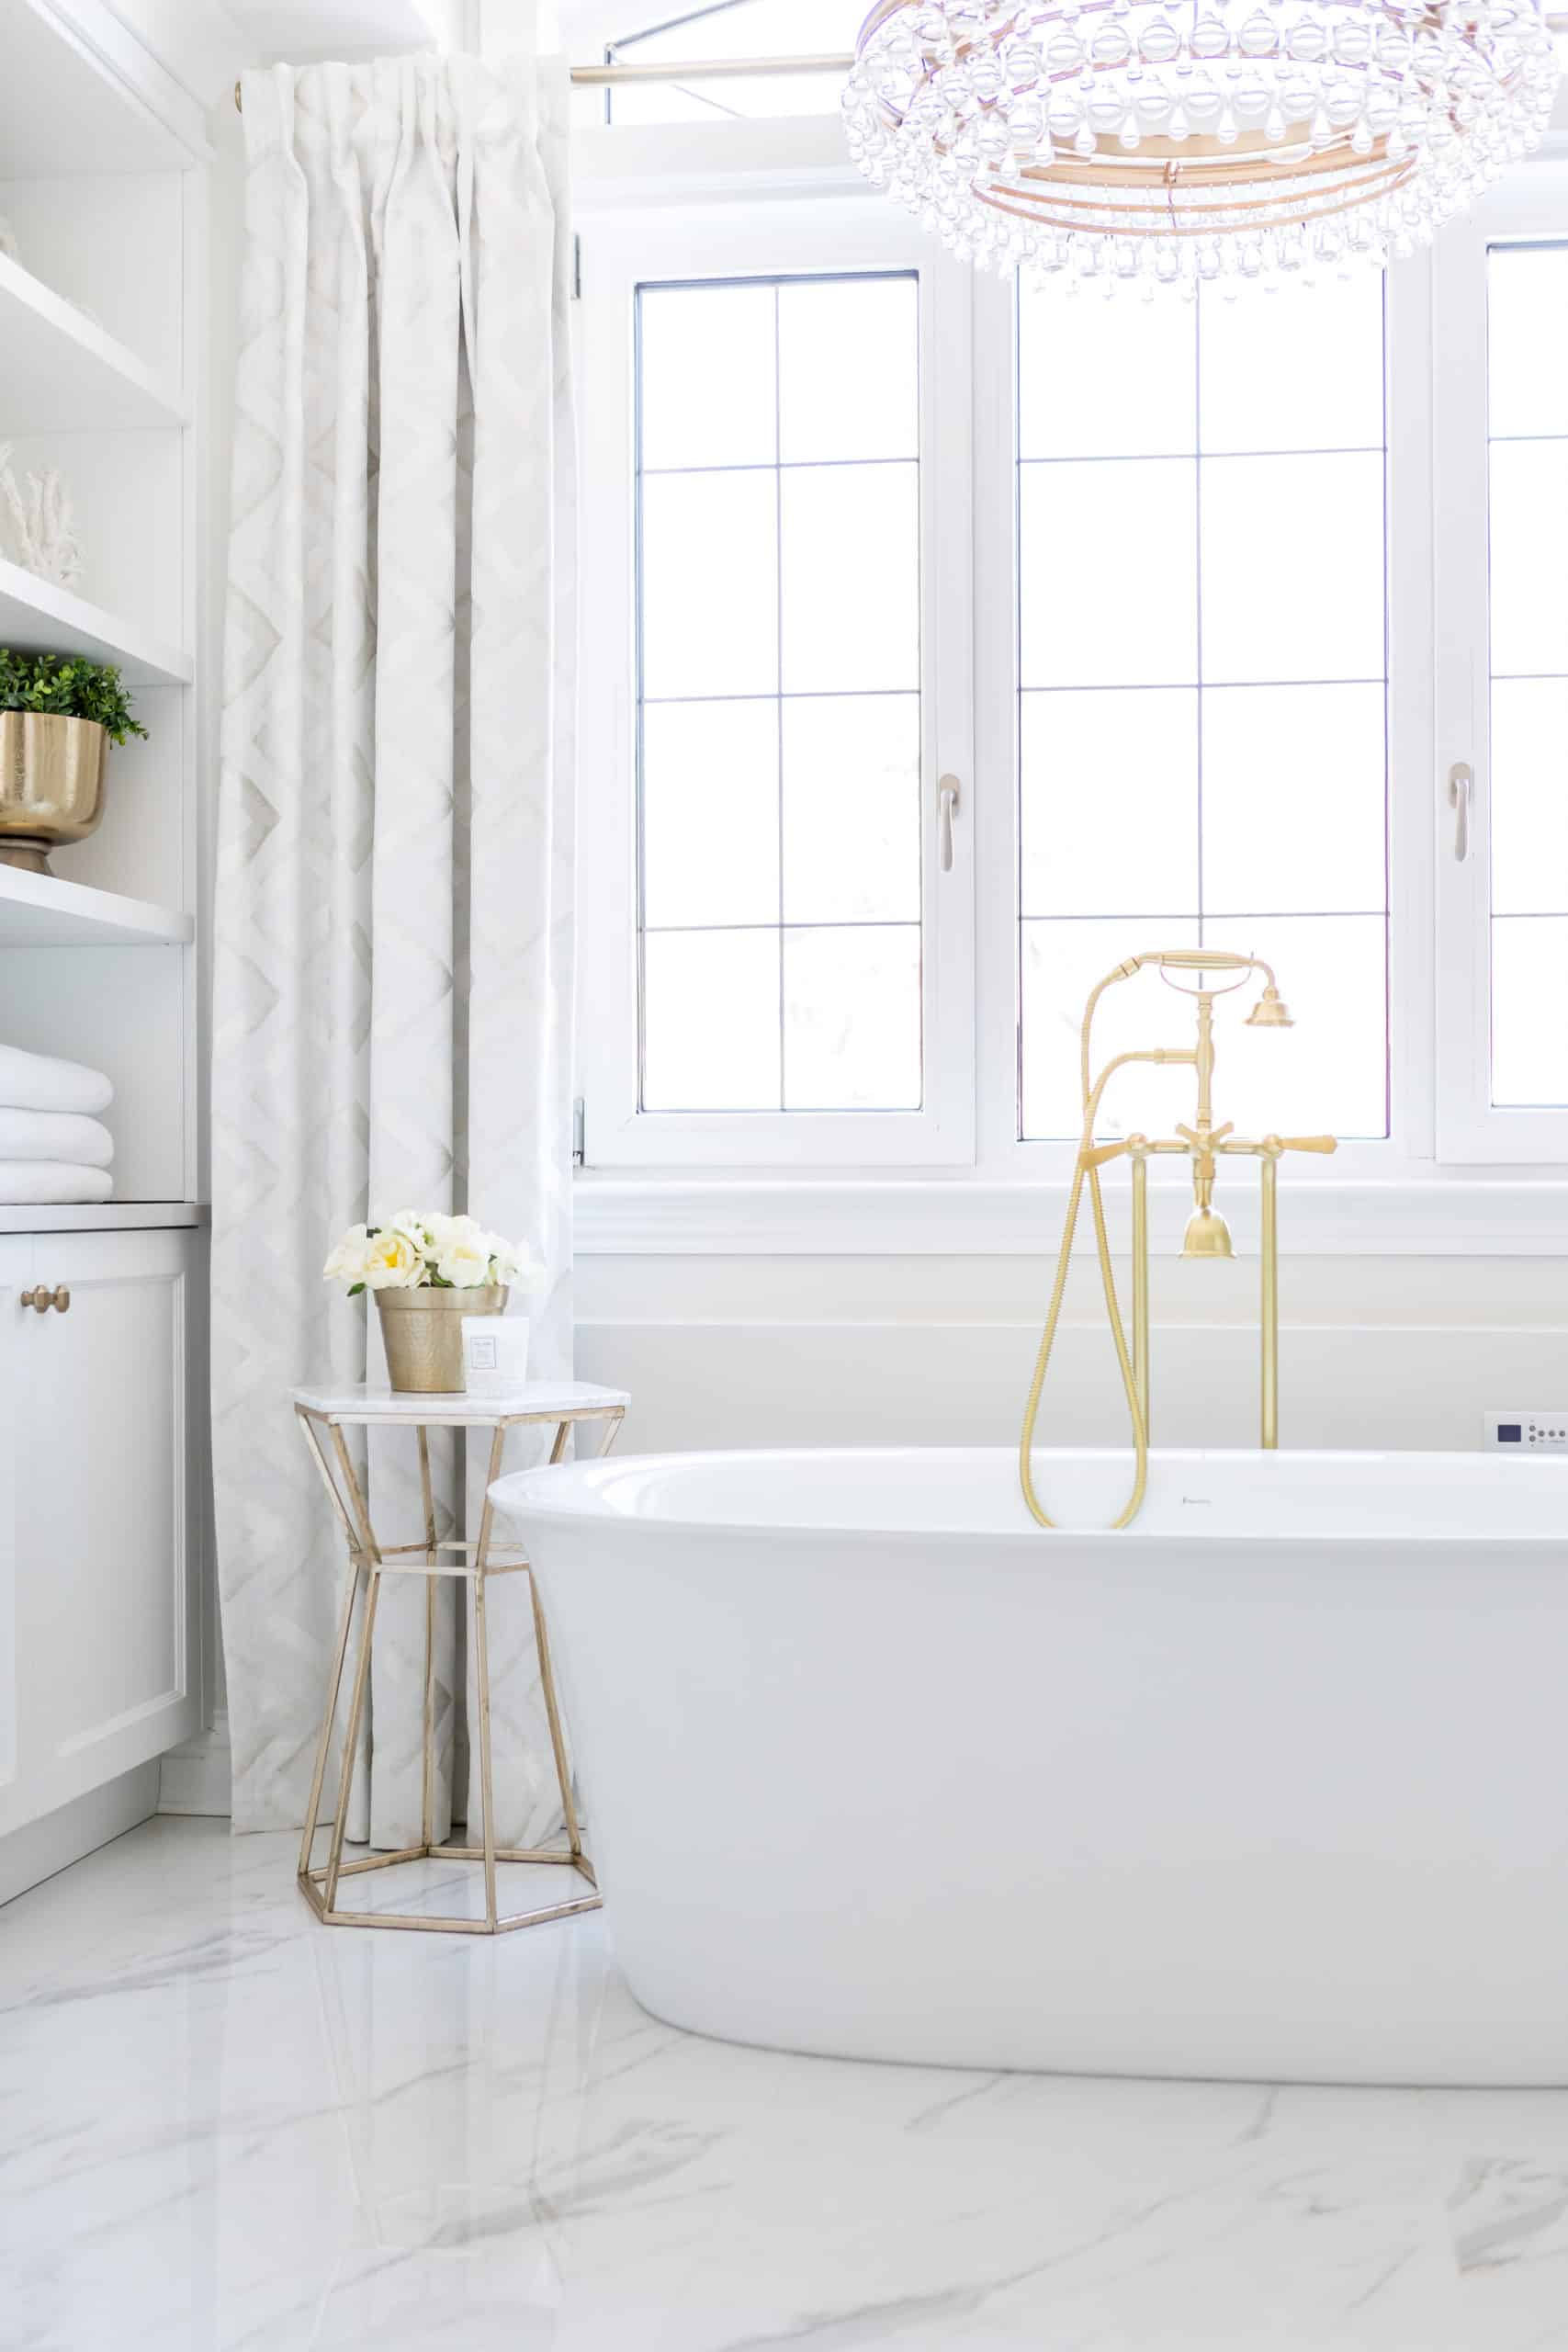 White soaker tub with a golden faucet